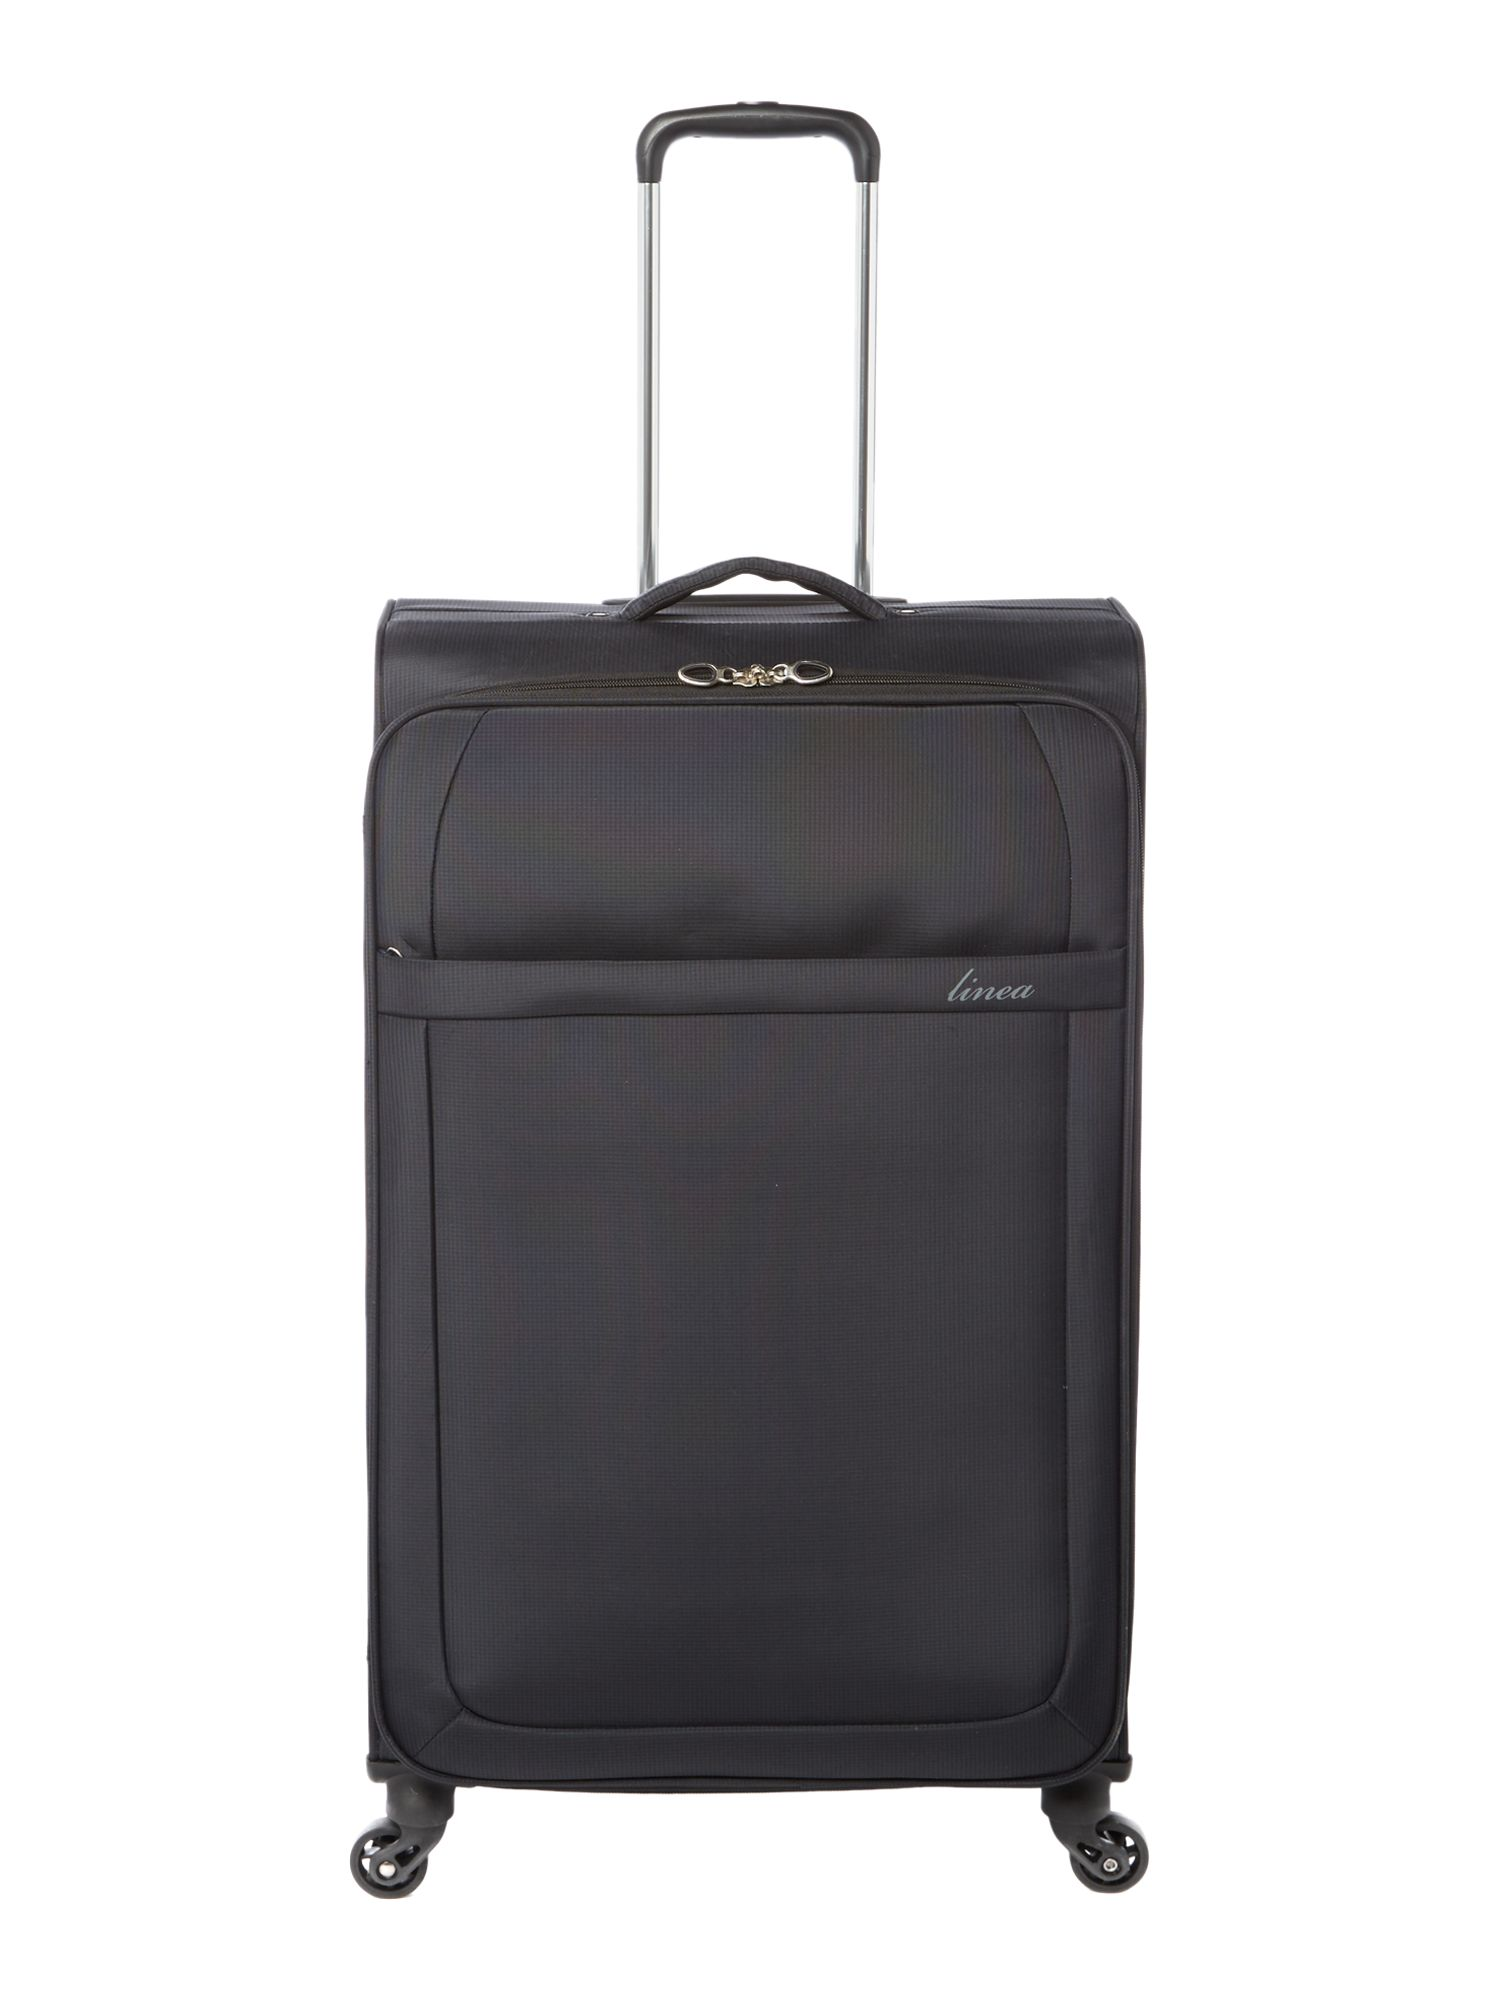 Linea Airlite black 4 wheel soft large suitcase, Black